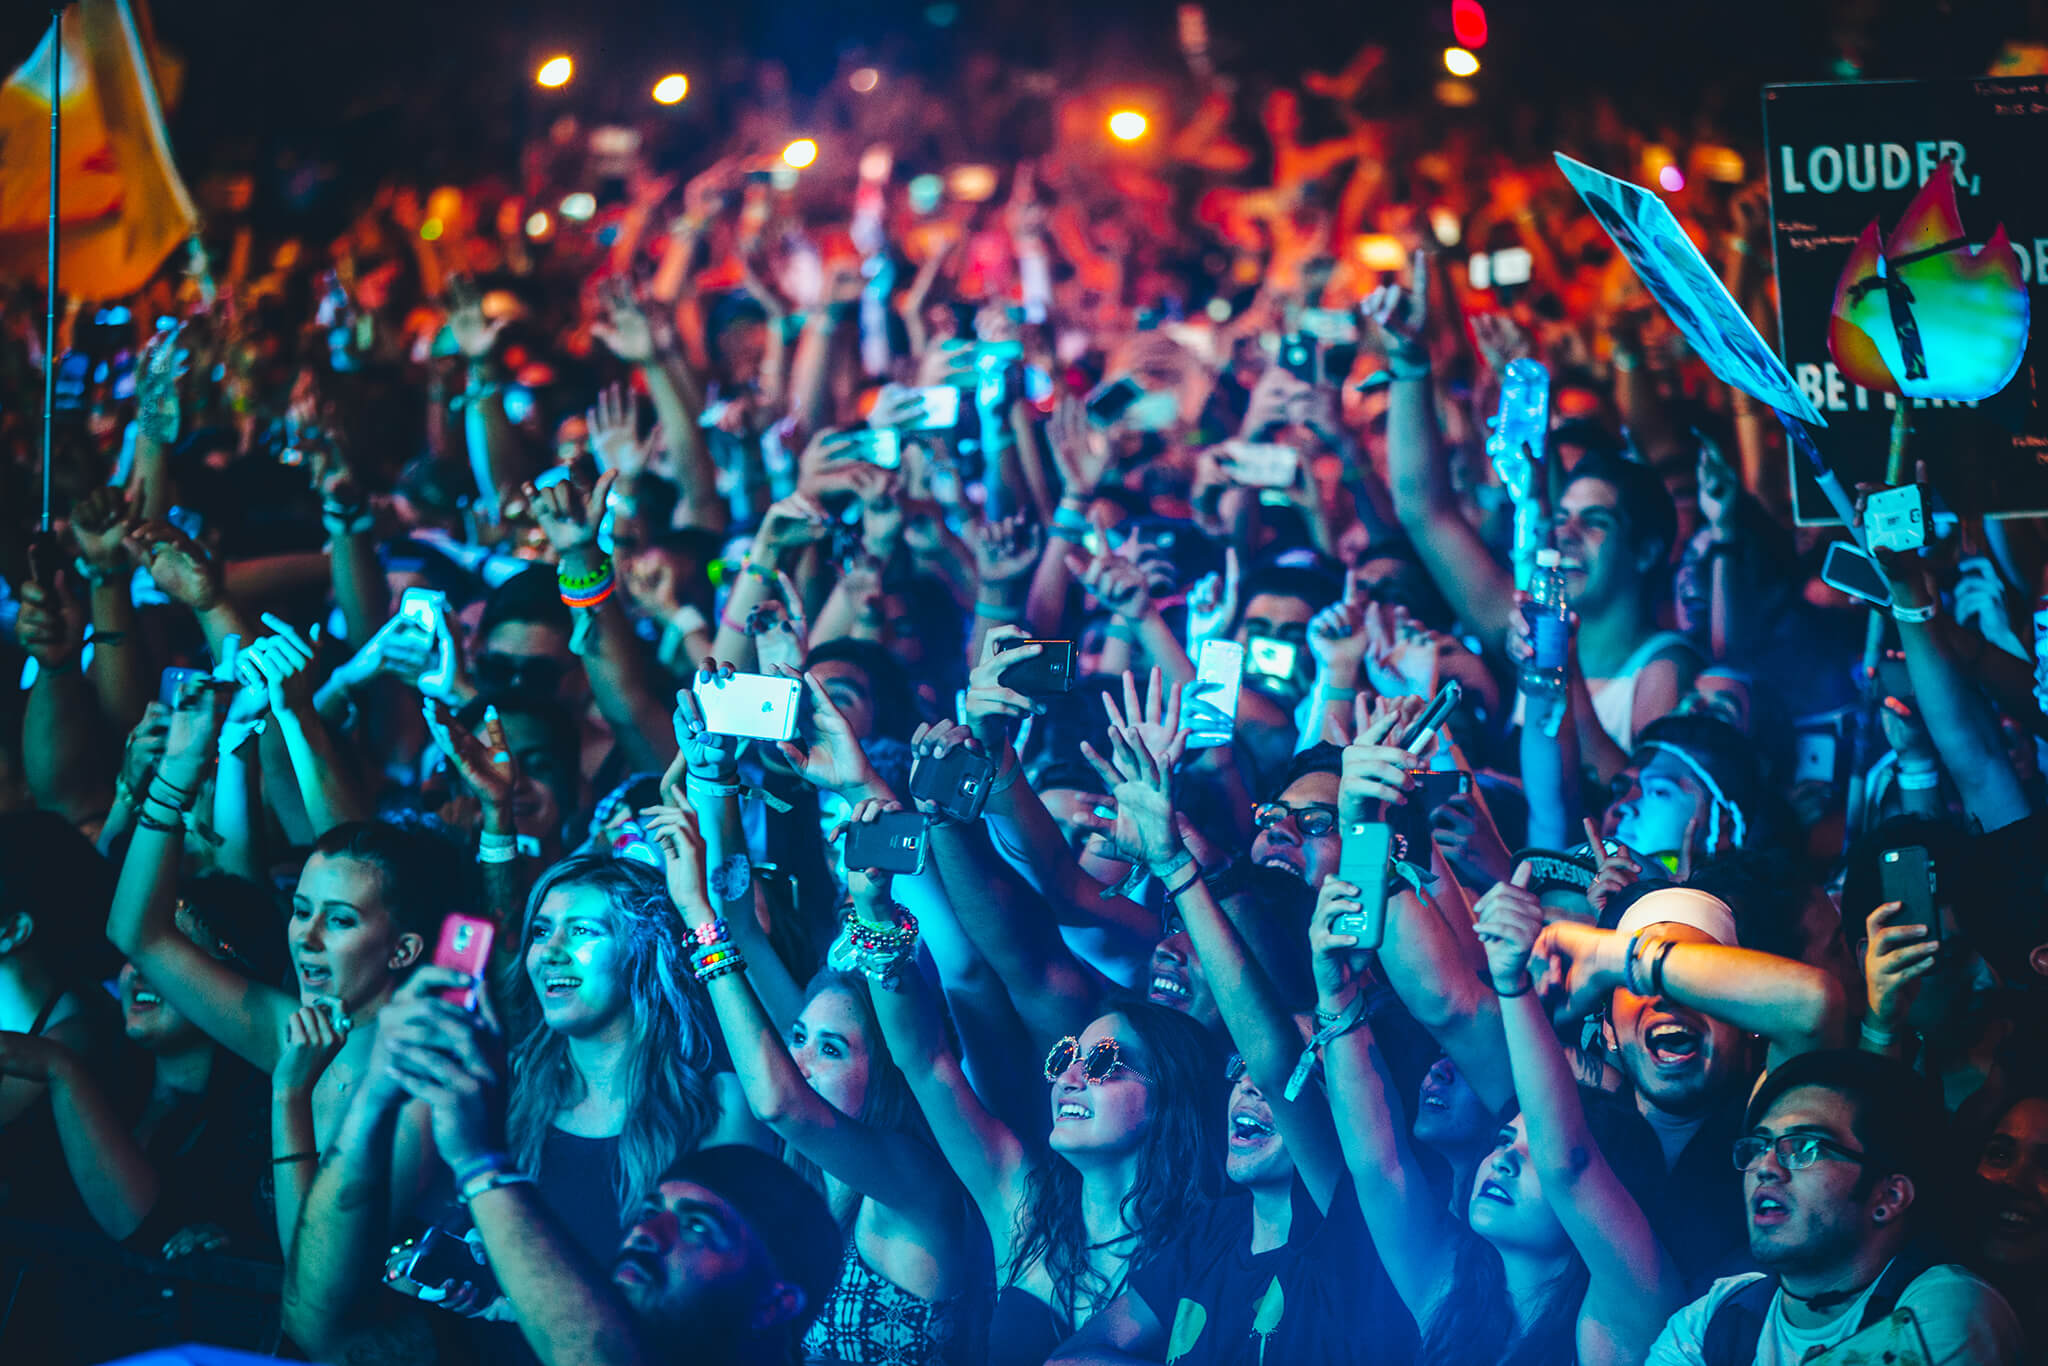 Fans at Sun City Music Festival 2015